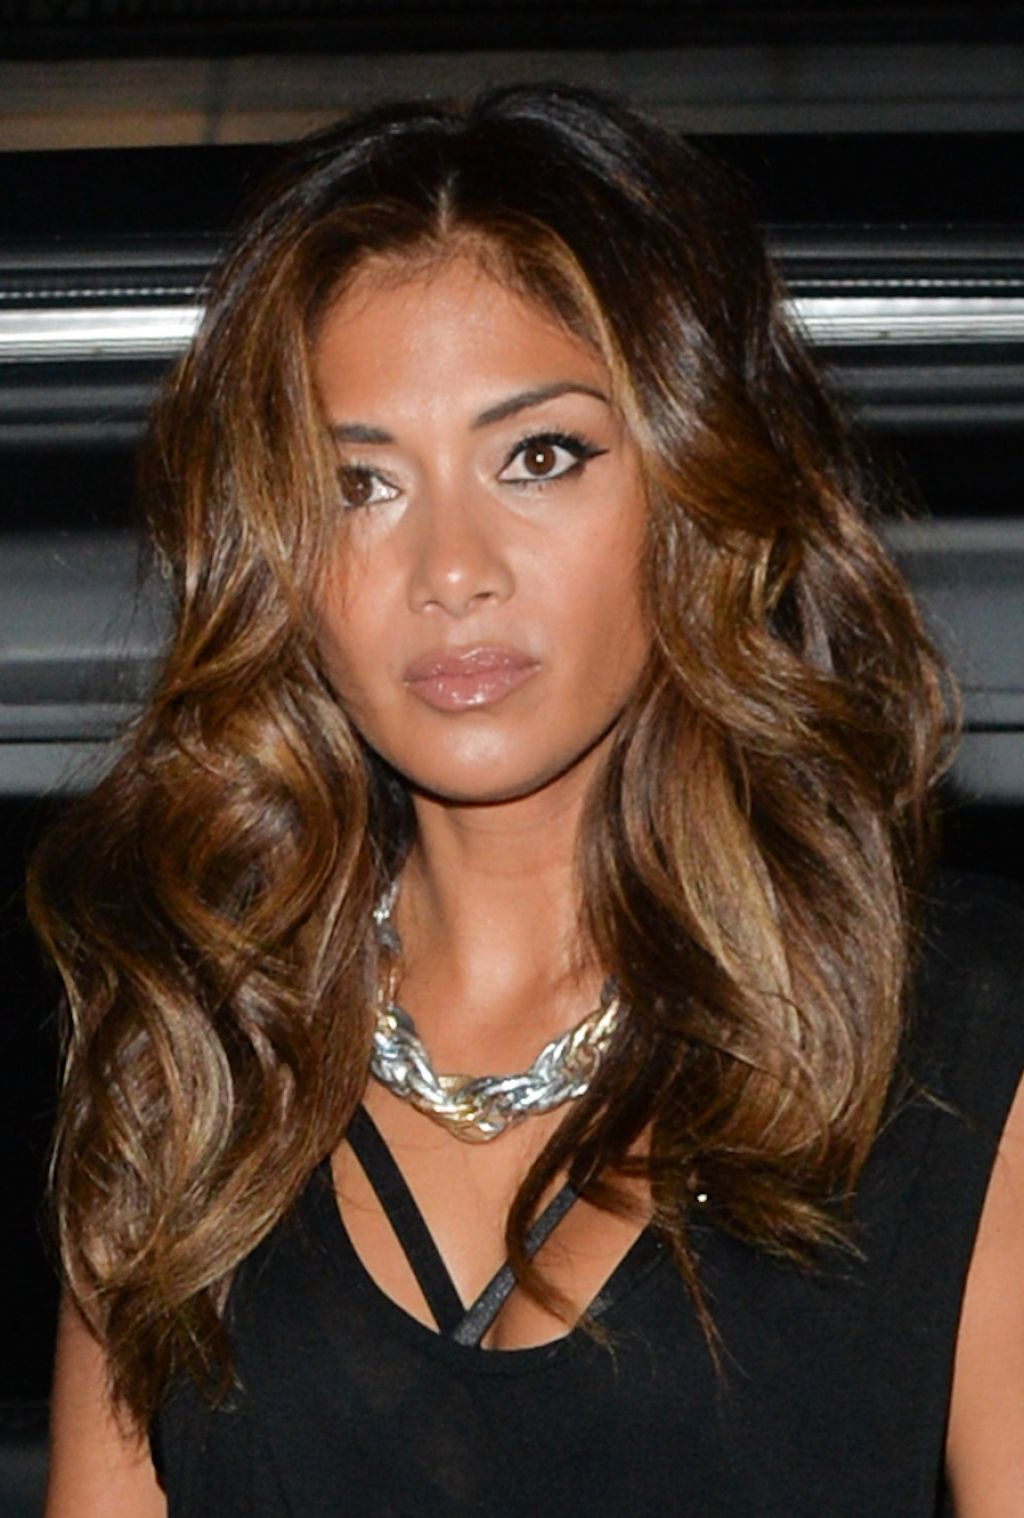 Nicole Scherzinger Night Out Style - Leaving Nobu Restaurant London, August 2014